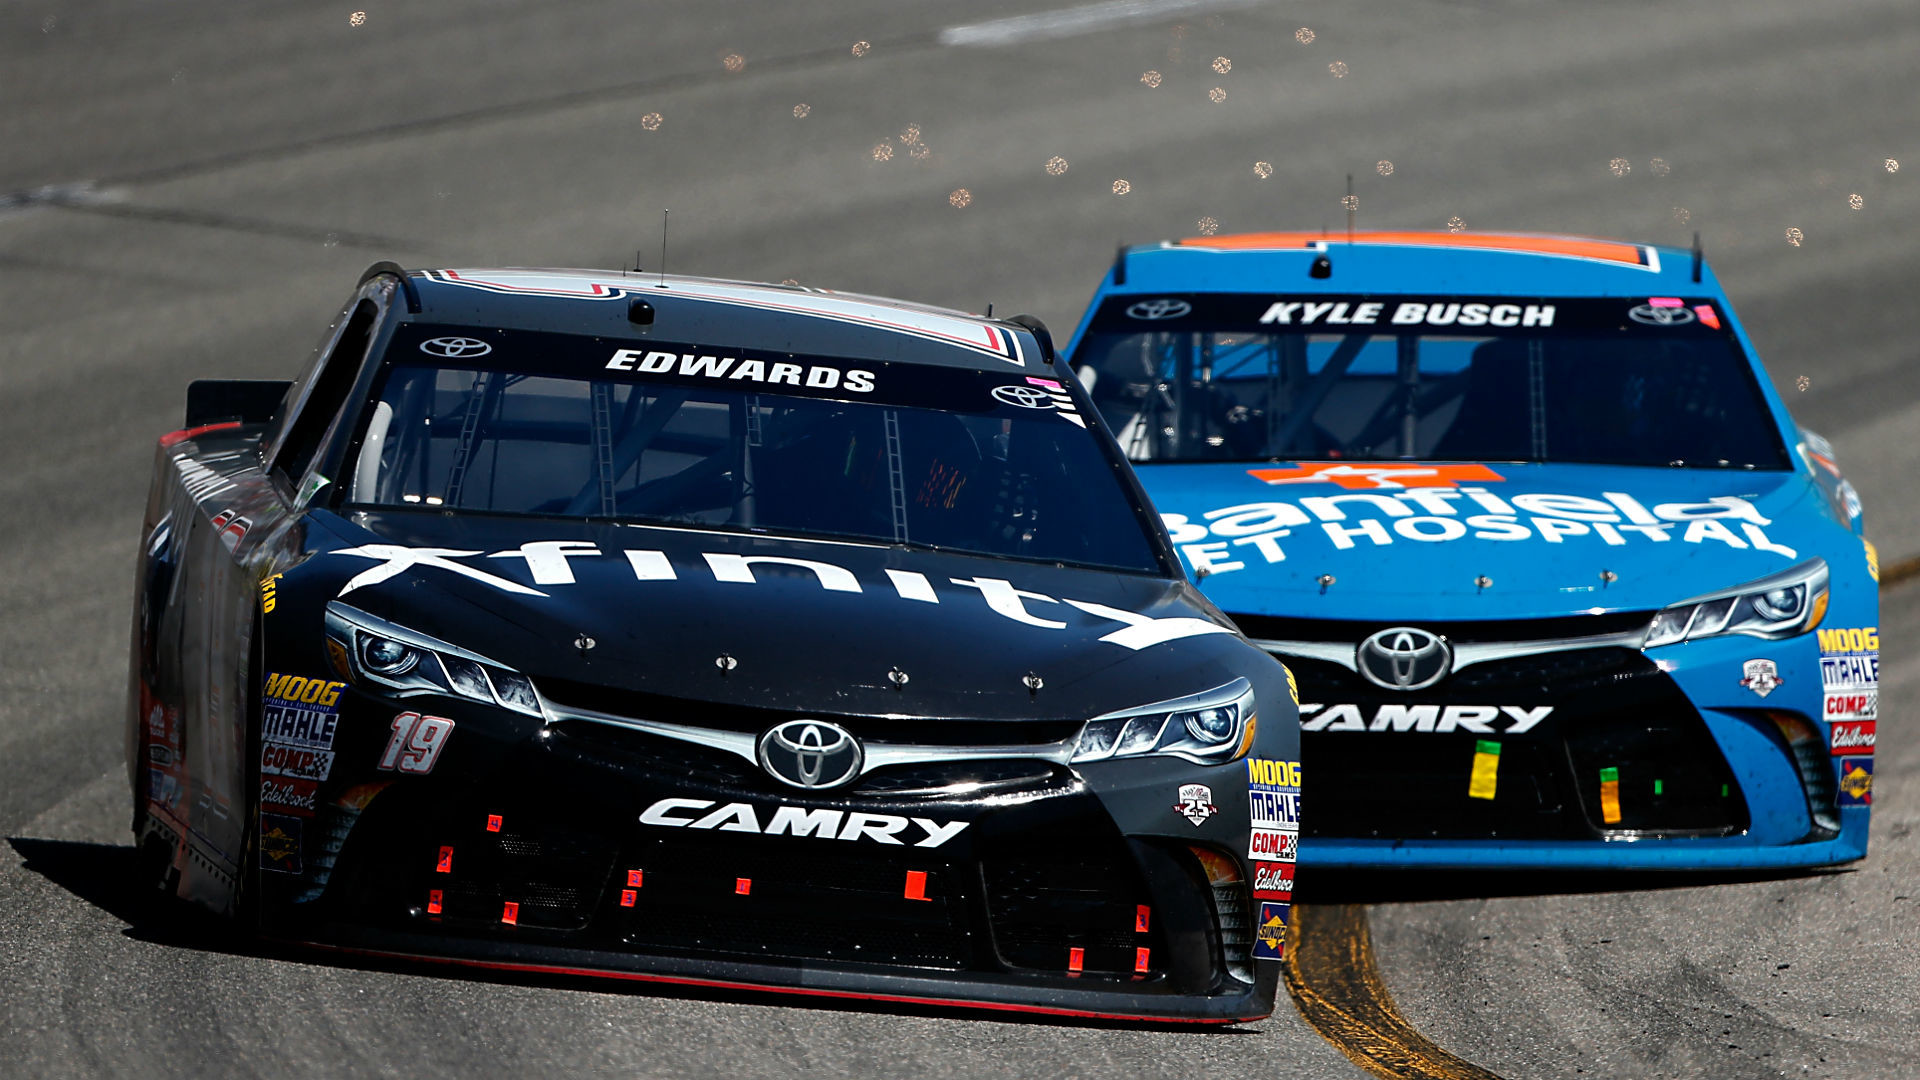 Res: 1920x1080, Carl Edwards' dramatic move saves NASCAR from another ugly mess | NASCAR |  Sporting News